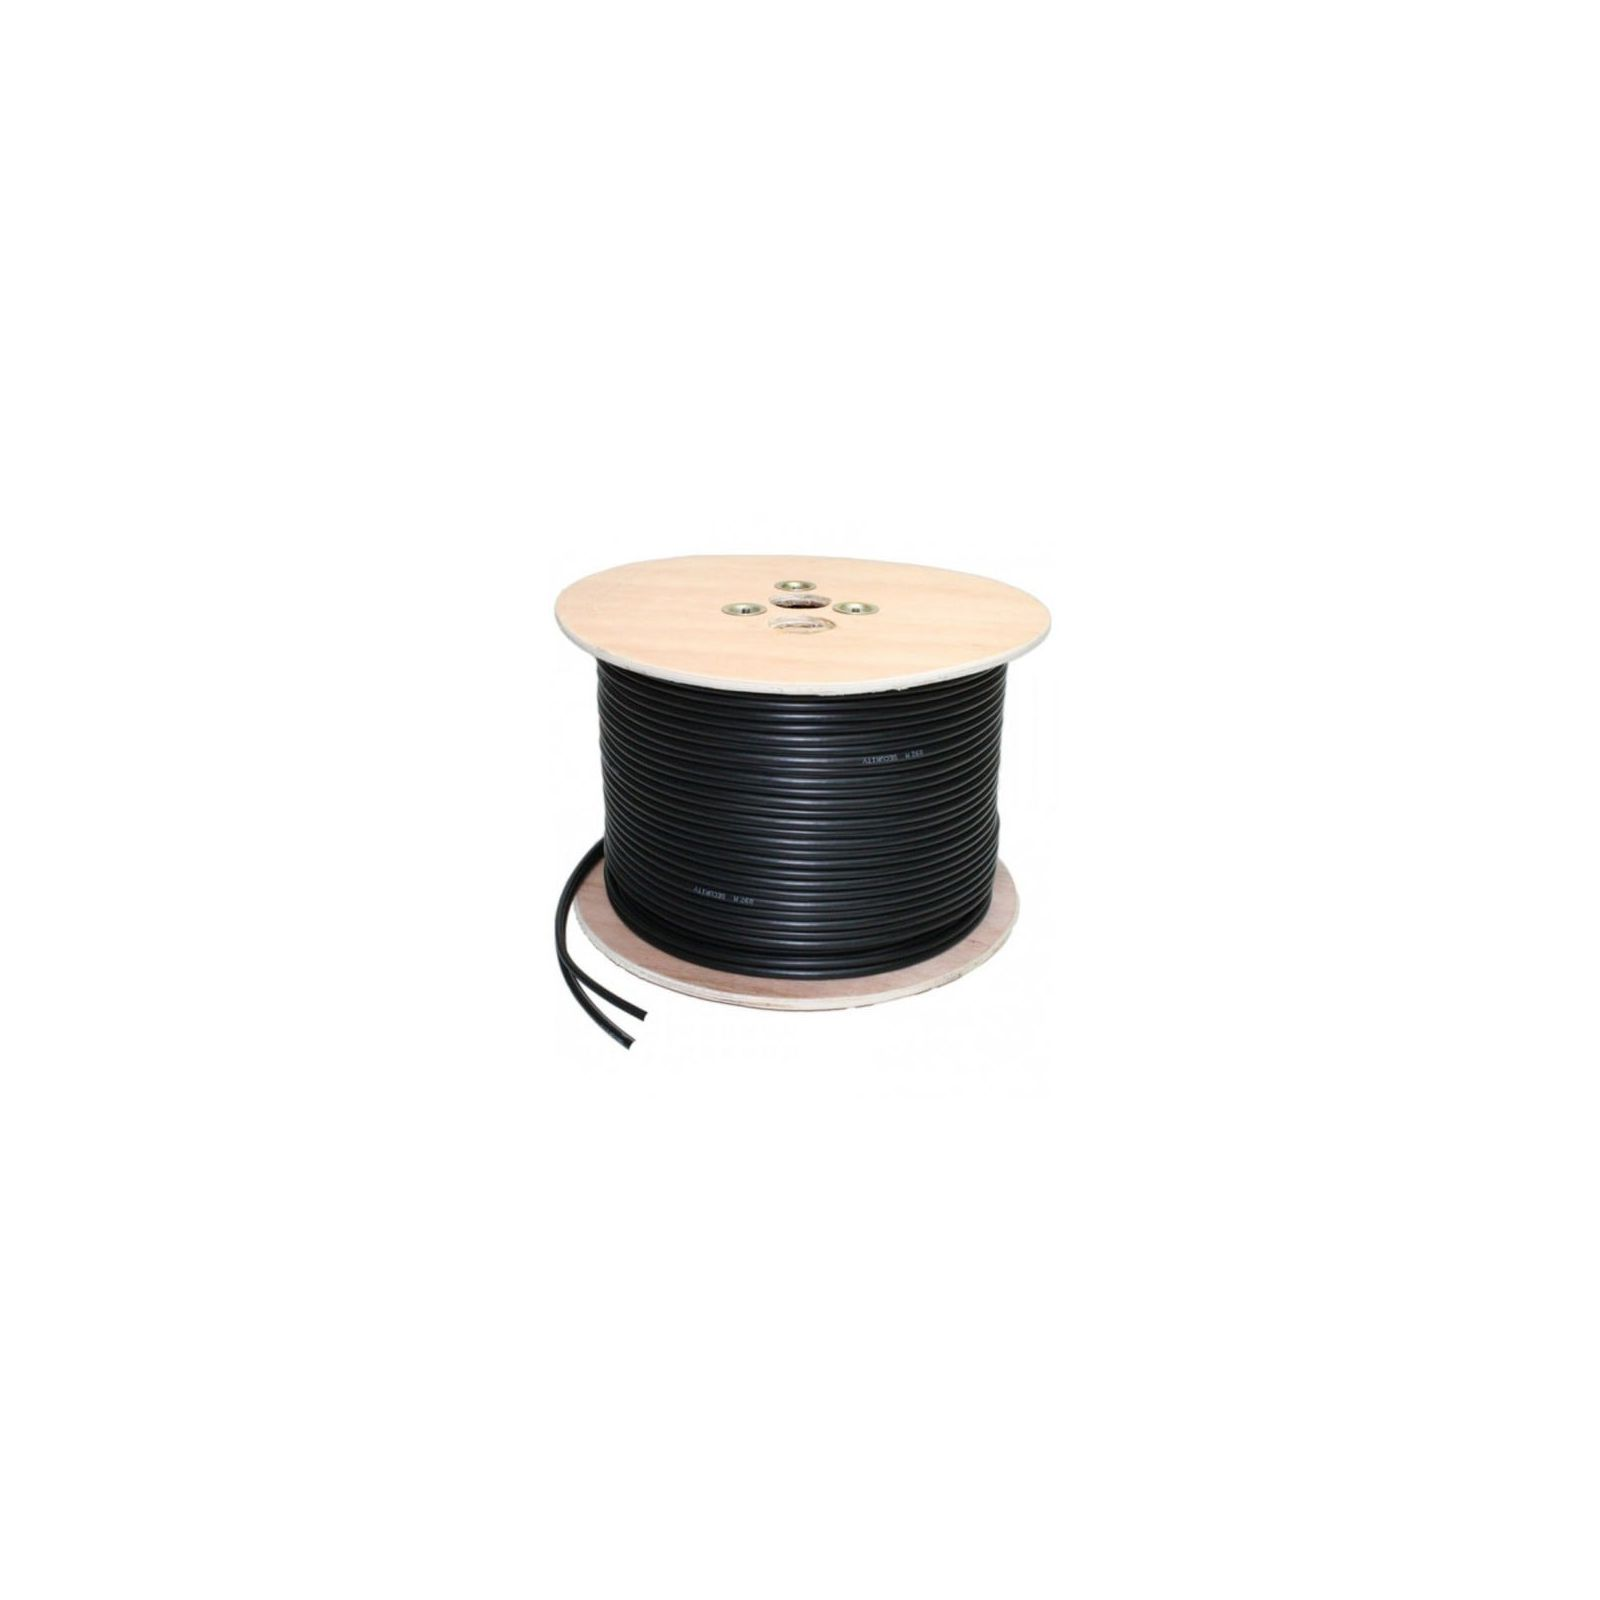 CABLE COAXIAL VIDEO BNC RG59 + ALIMENTATION NON SERTI 100 M